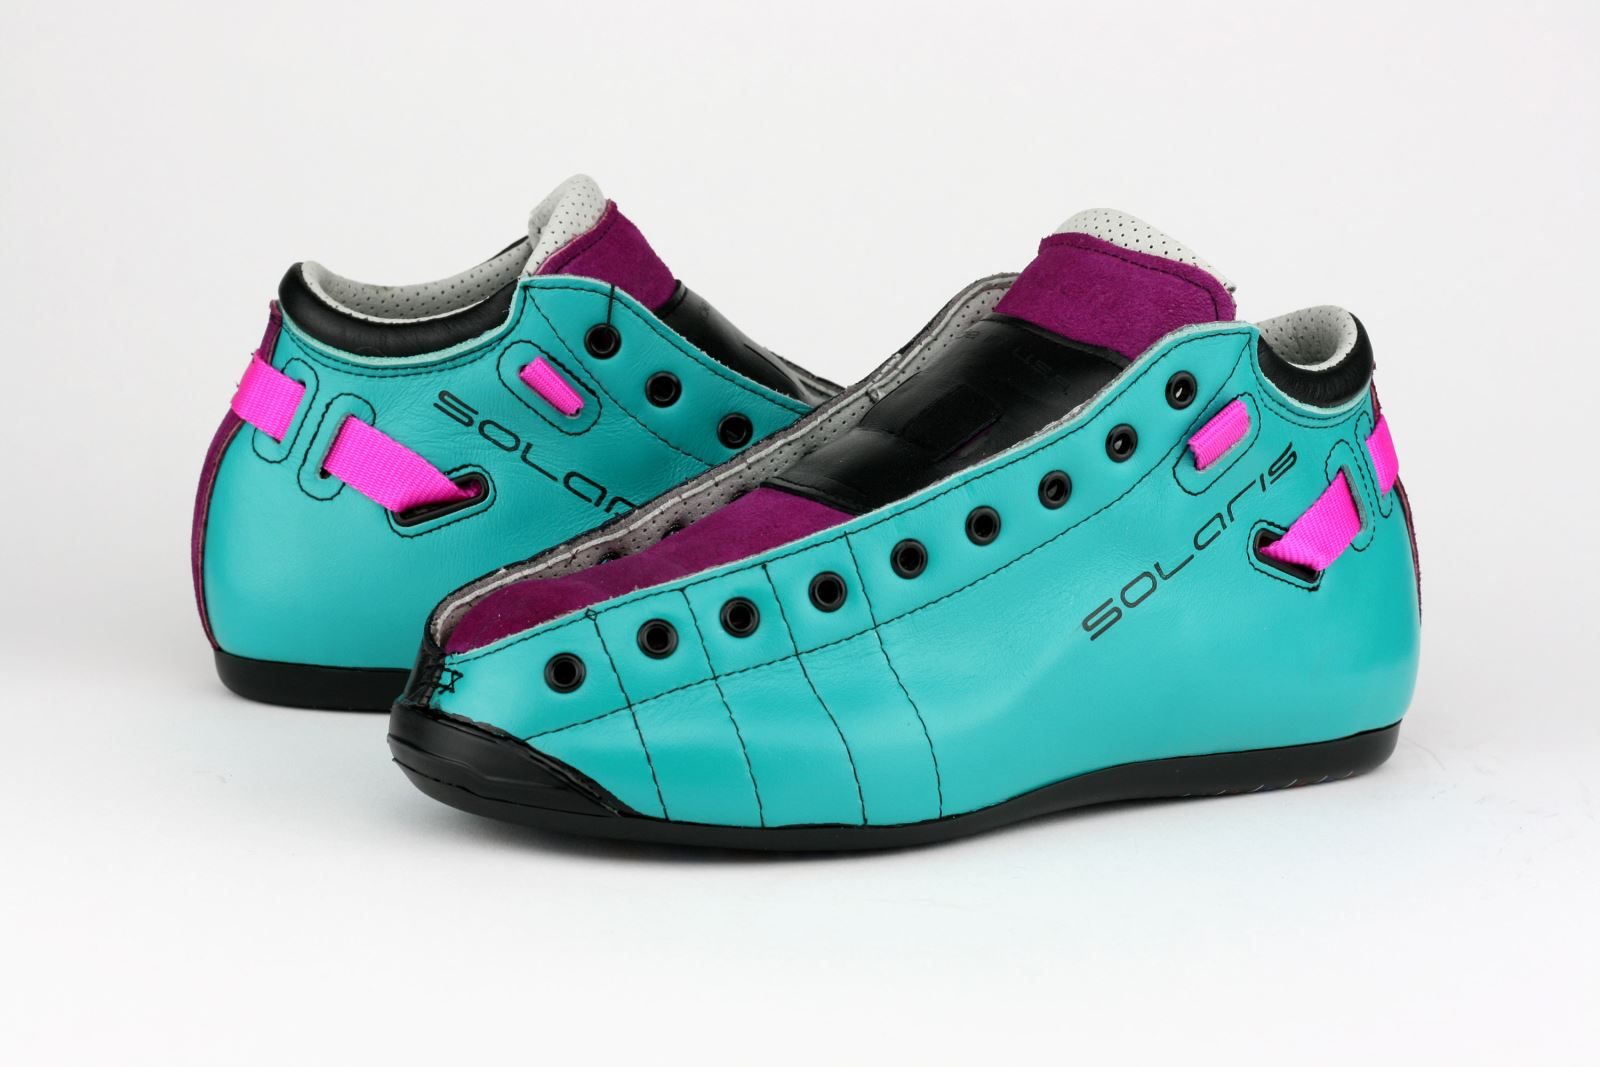 Riedell Solaris ColorLab Boots - Turquoise and Fuchsia